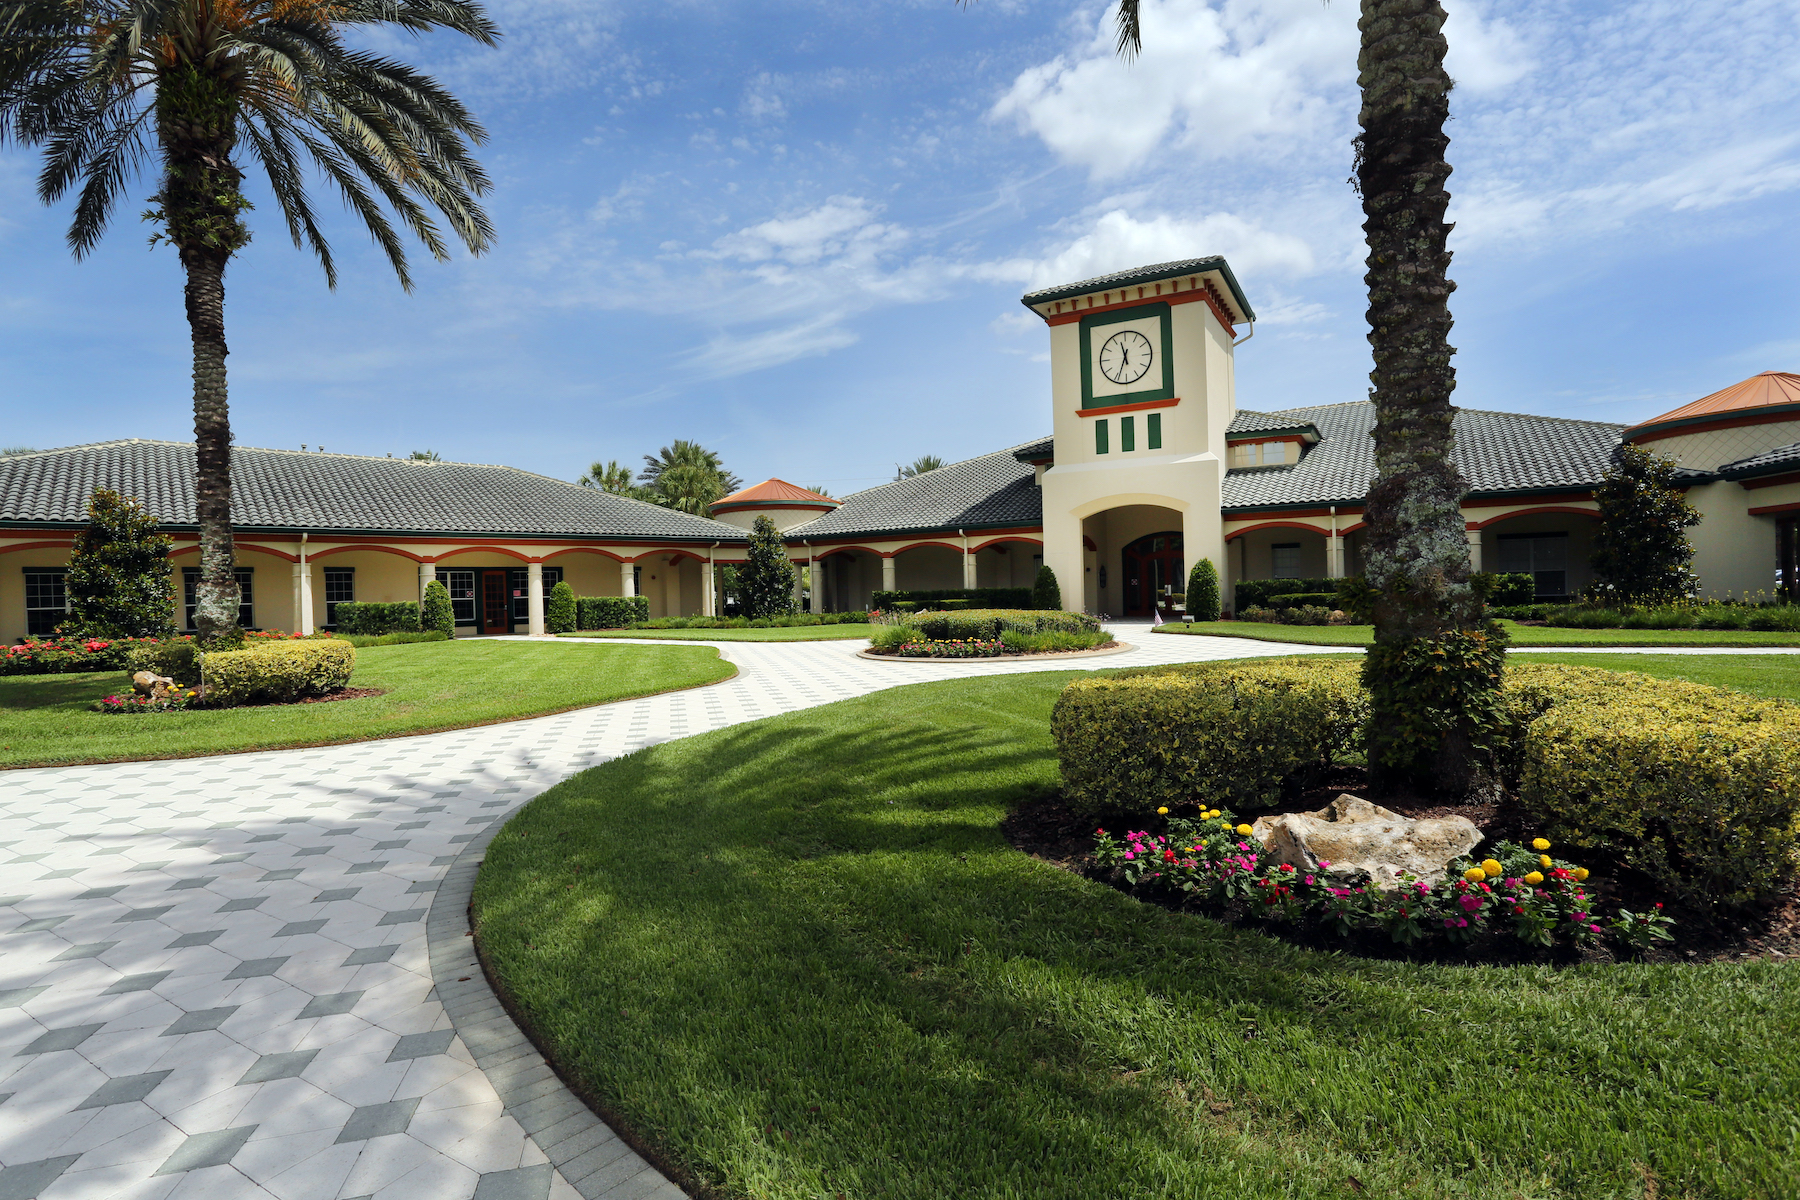 Property enhancements for your HOA or business